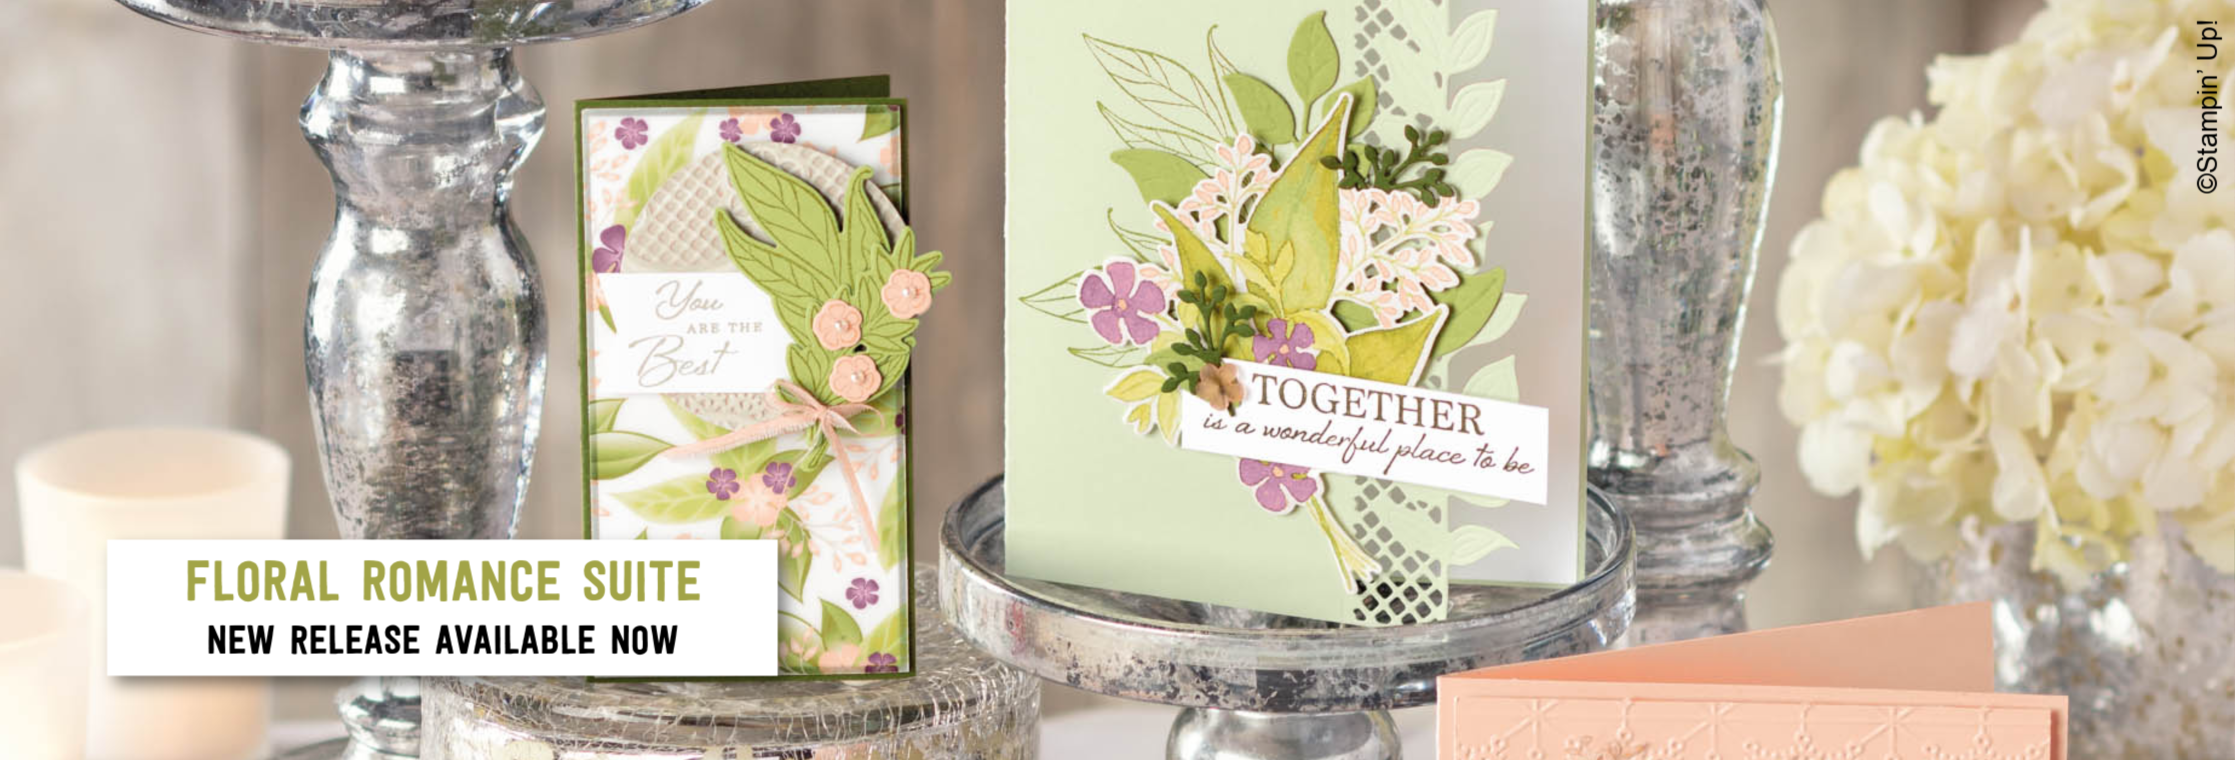 Floral Romance Suite from Stampin' Up! - New release for 2019!